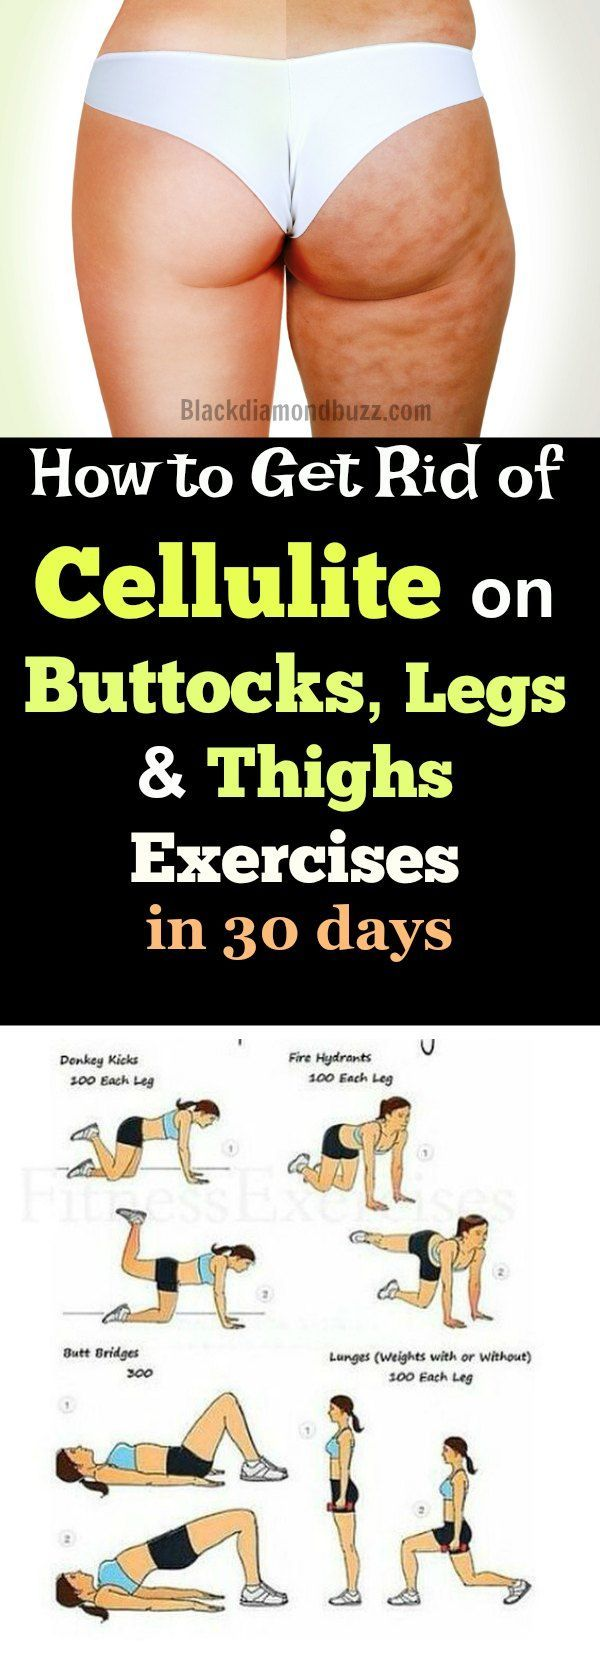 How to Get Rid of Cellulite on Buttocks, Legs and Thigh Exercises in 30 Days.  Summer is here, everybody wants to look sexy on the beach and nobody want to display those stubborn cellulites on thighs and bum. So you are not alone here, if you are looking for exercises to get rid of cellulite on buttocks and thighs. Many people including male and females suffer from dimple-causing fats on hips. The problem is worse among the females. According to a Cornell University research, almost 98% of…